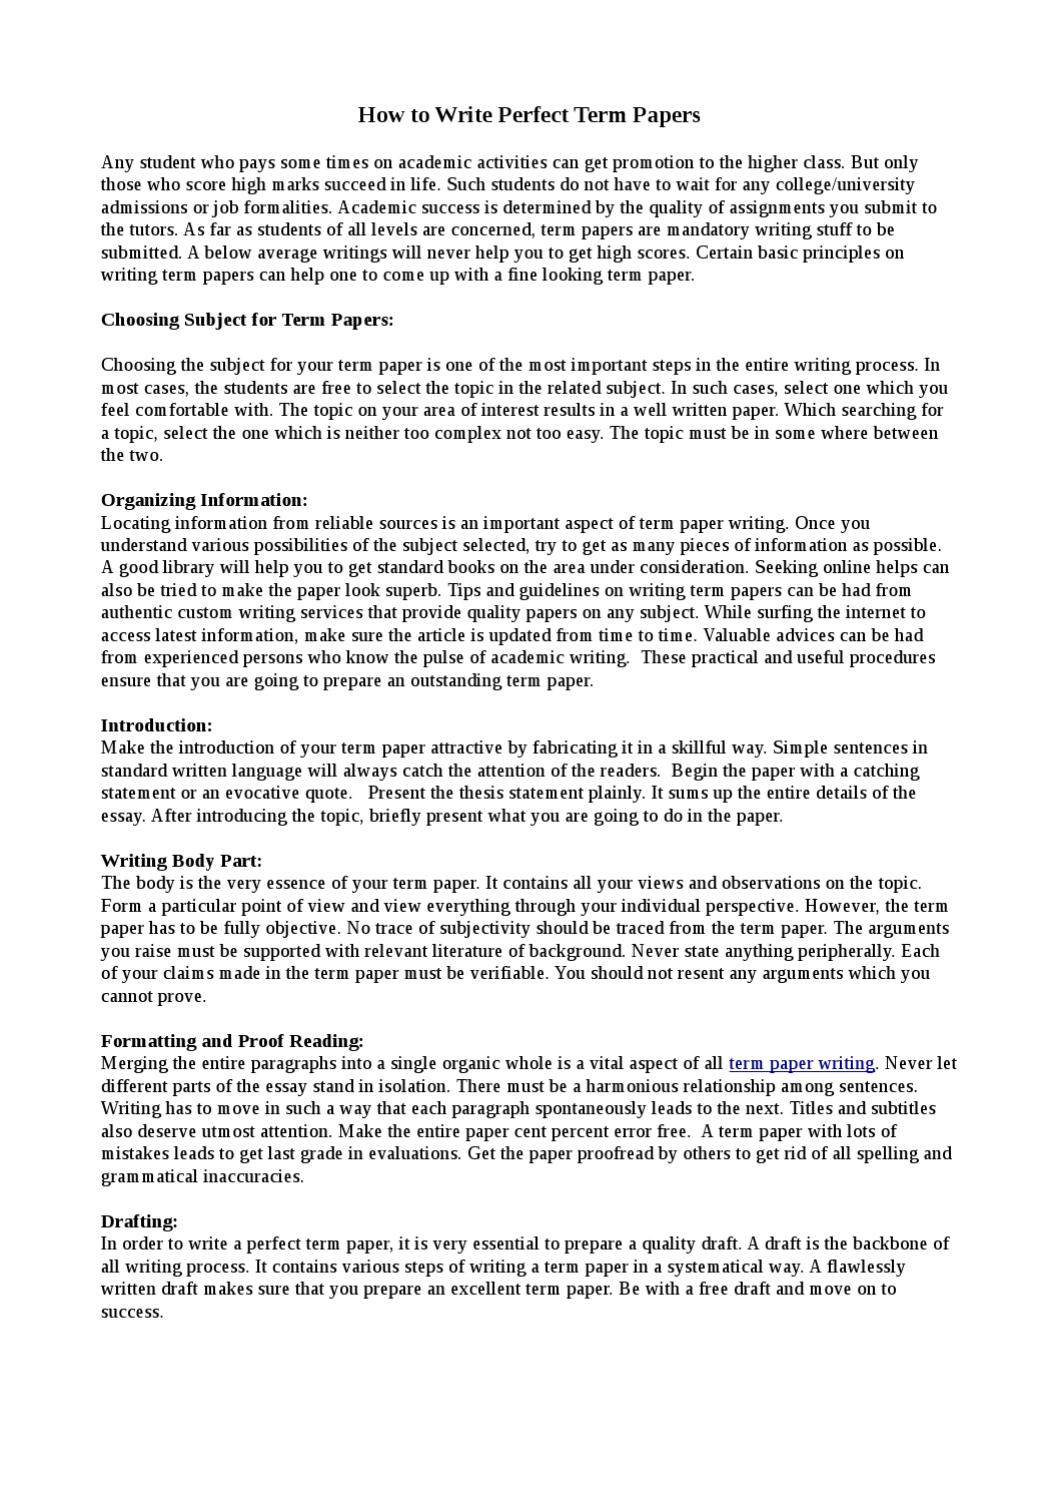 essay types ielts Ielts writing sample - compare the advantages and disadvantages of three of the following as media for communicating information state which you consider to be most effective.